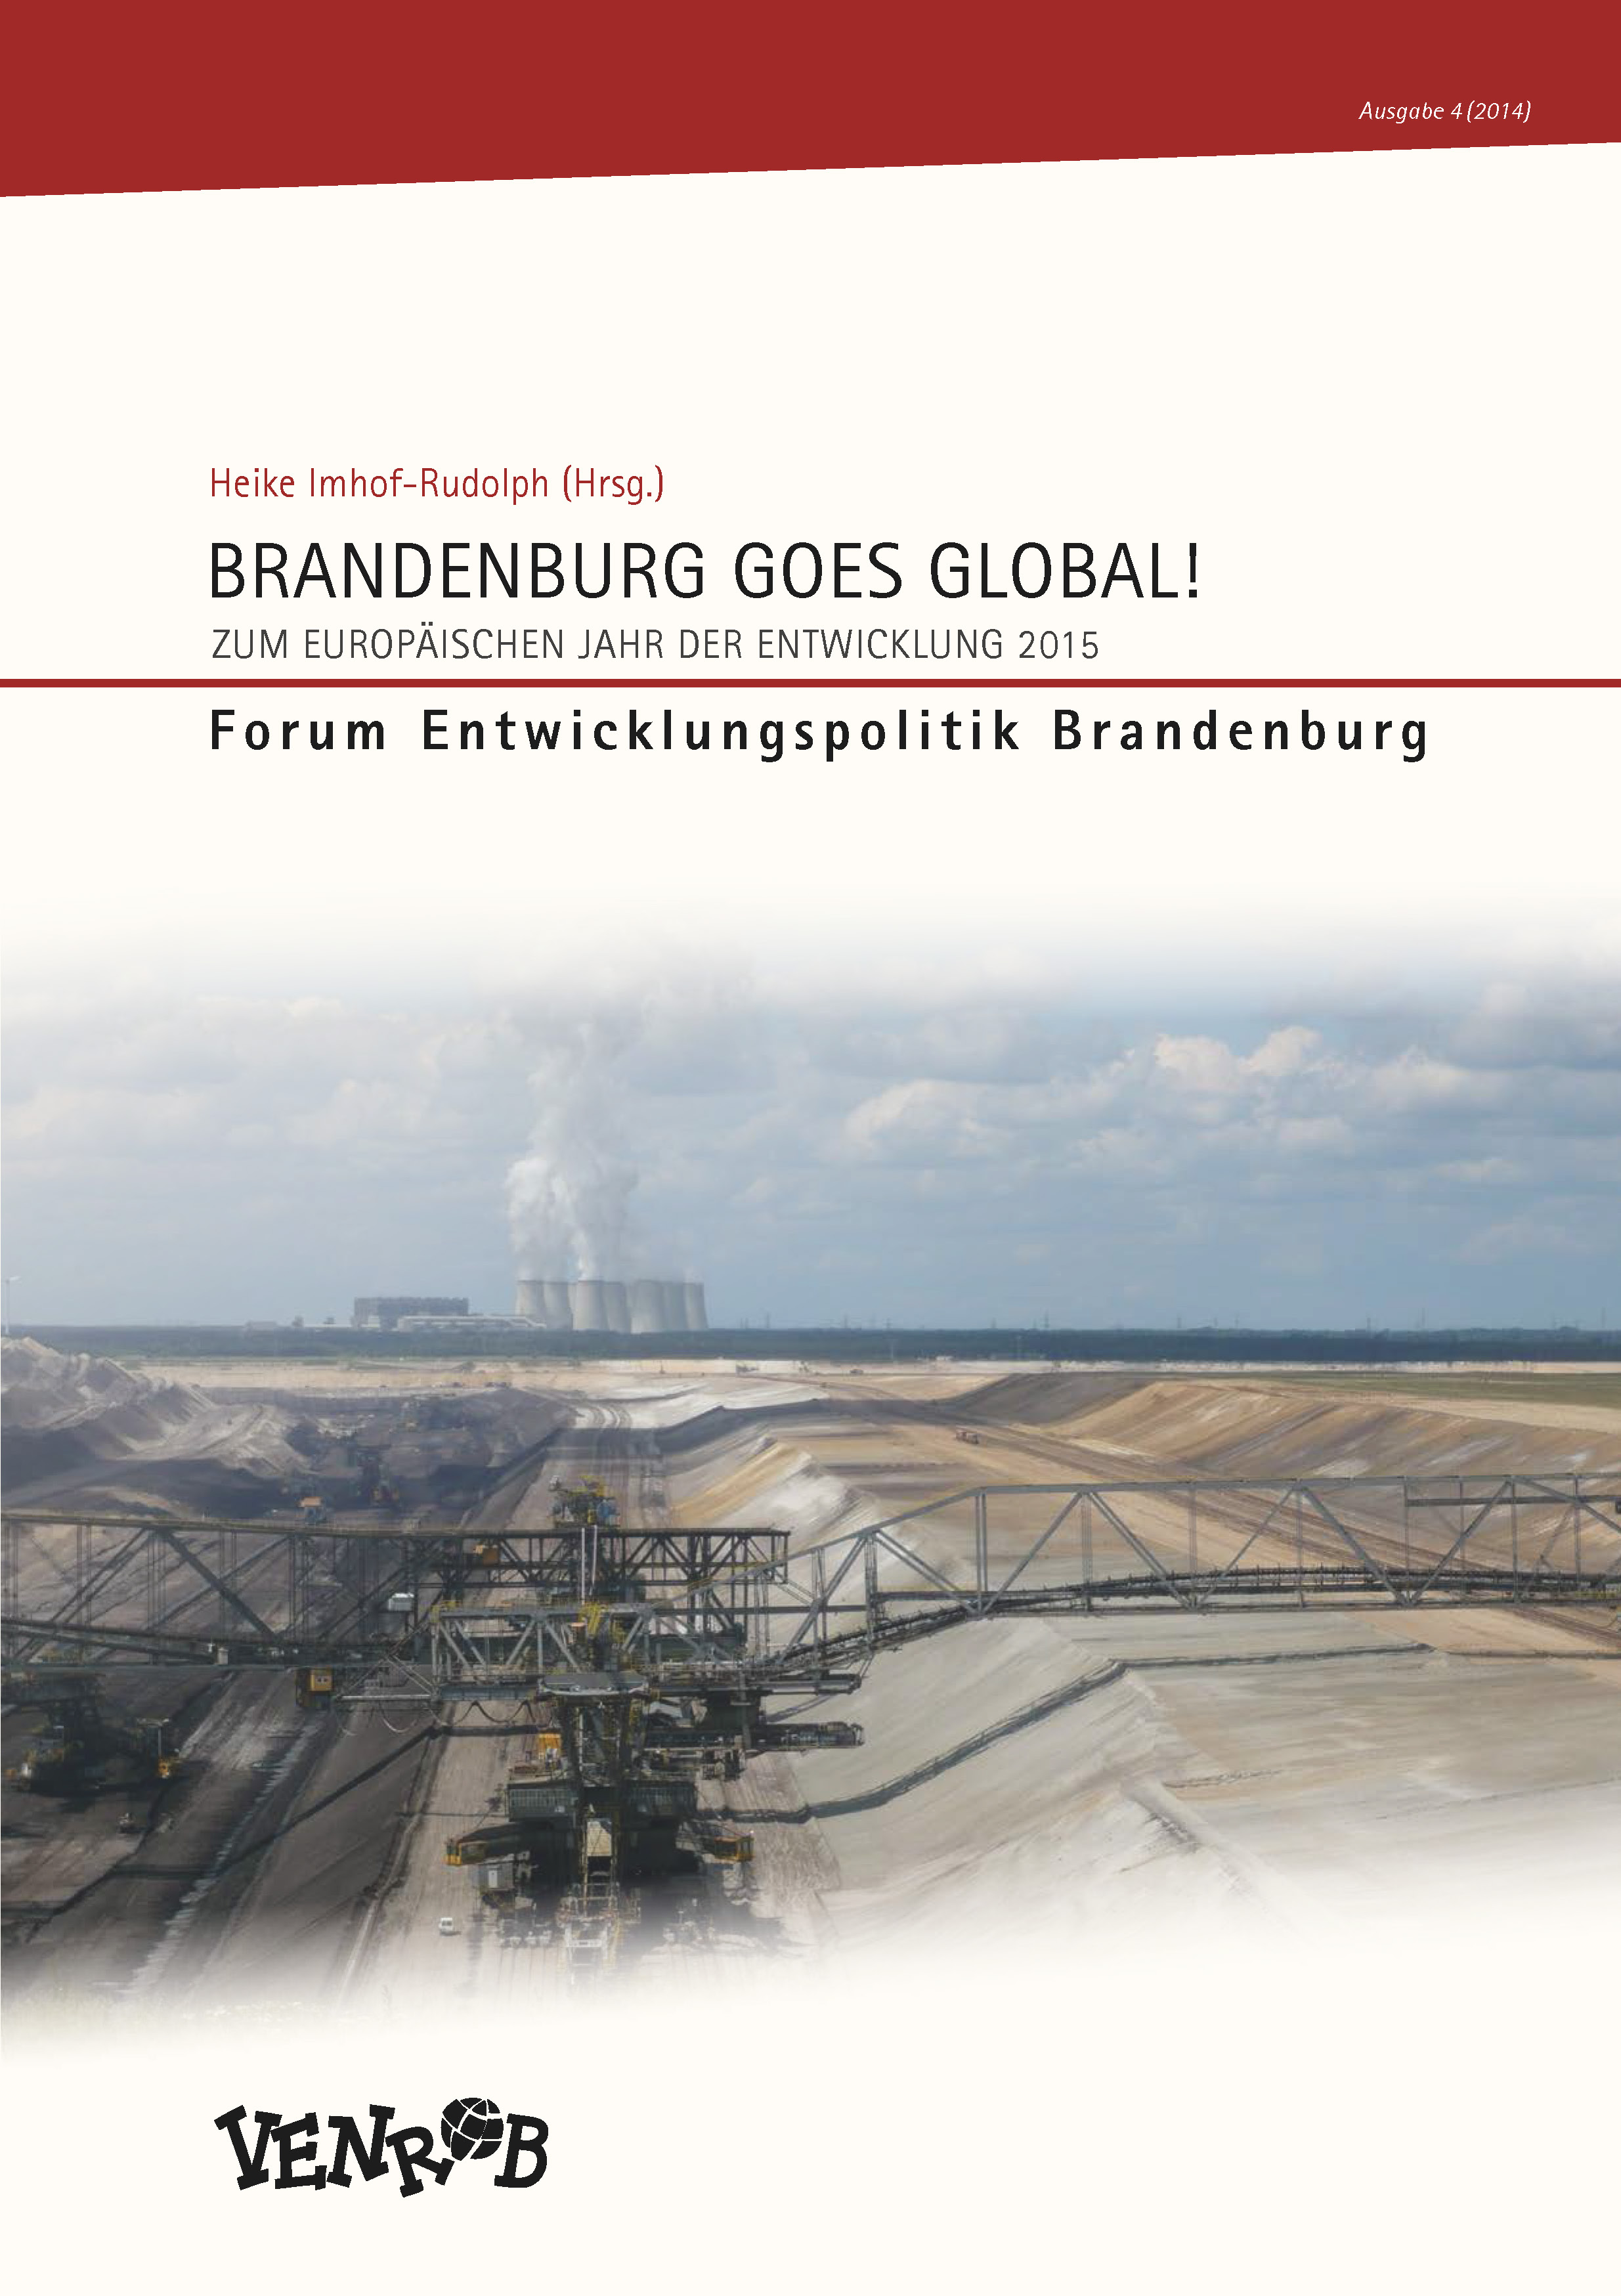 VENROB(Hrsg.): Brandenburg goes global. Forum Entwicklungspolitik Brandenburg 4 (2014)